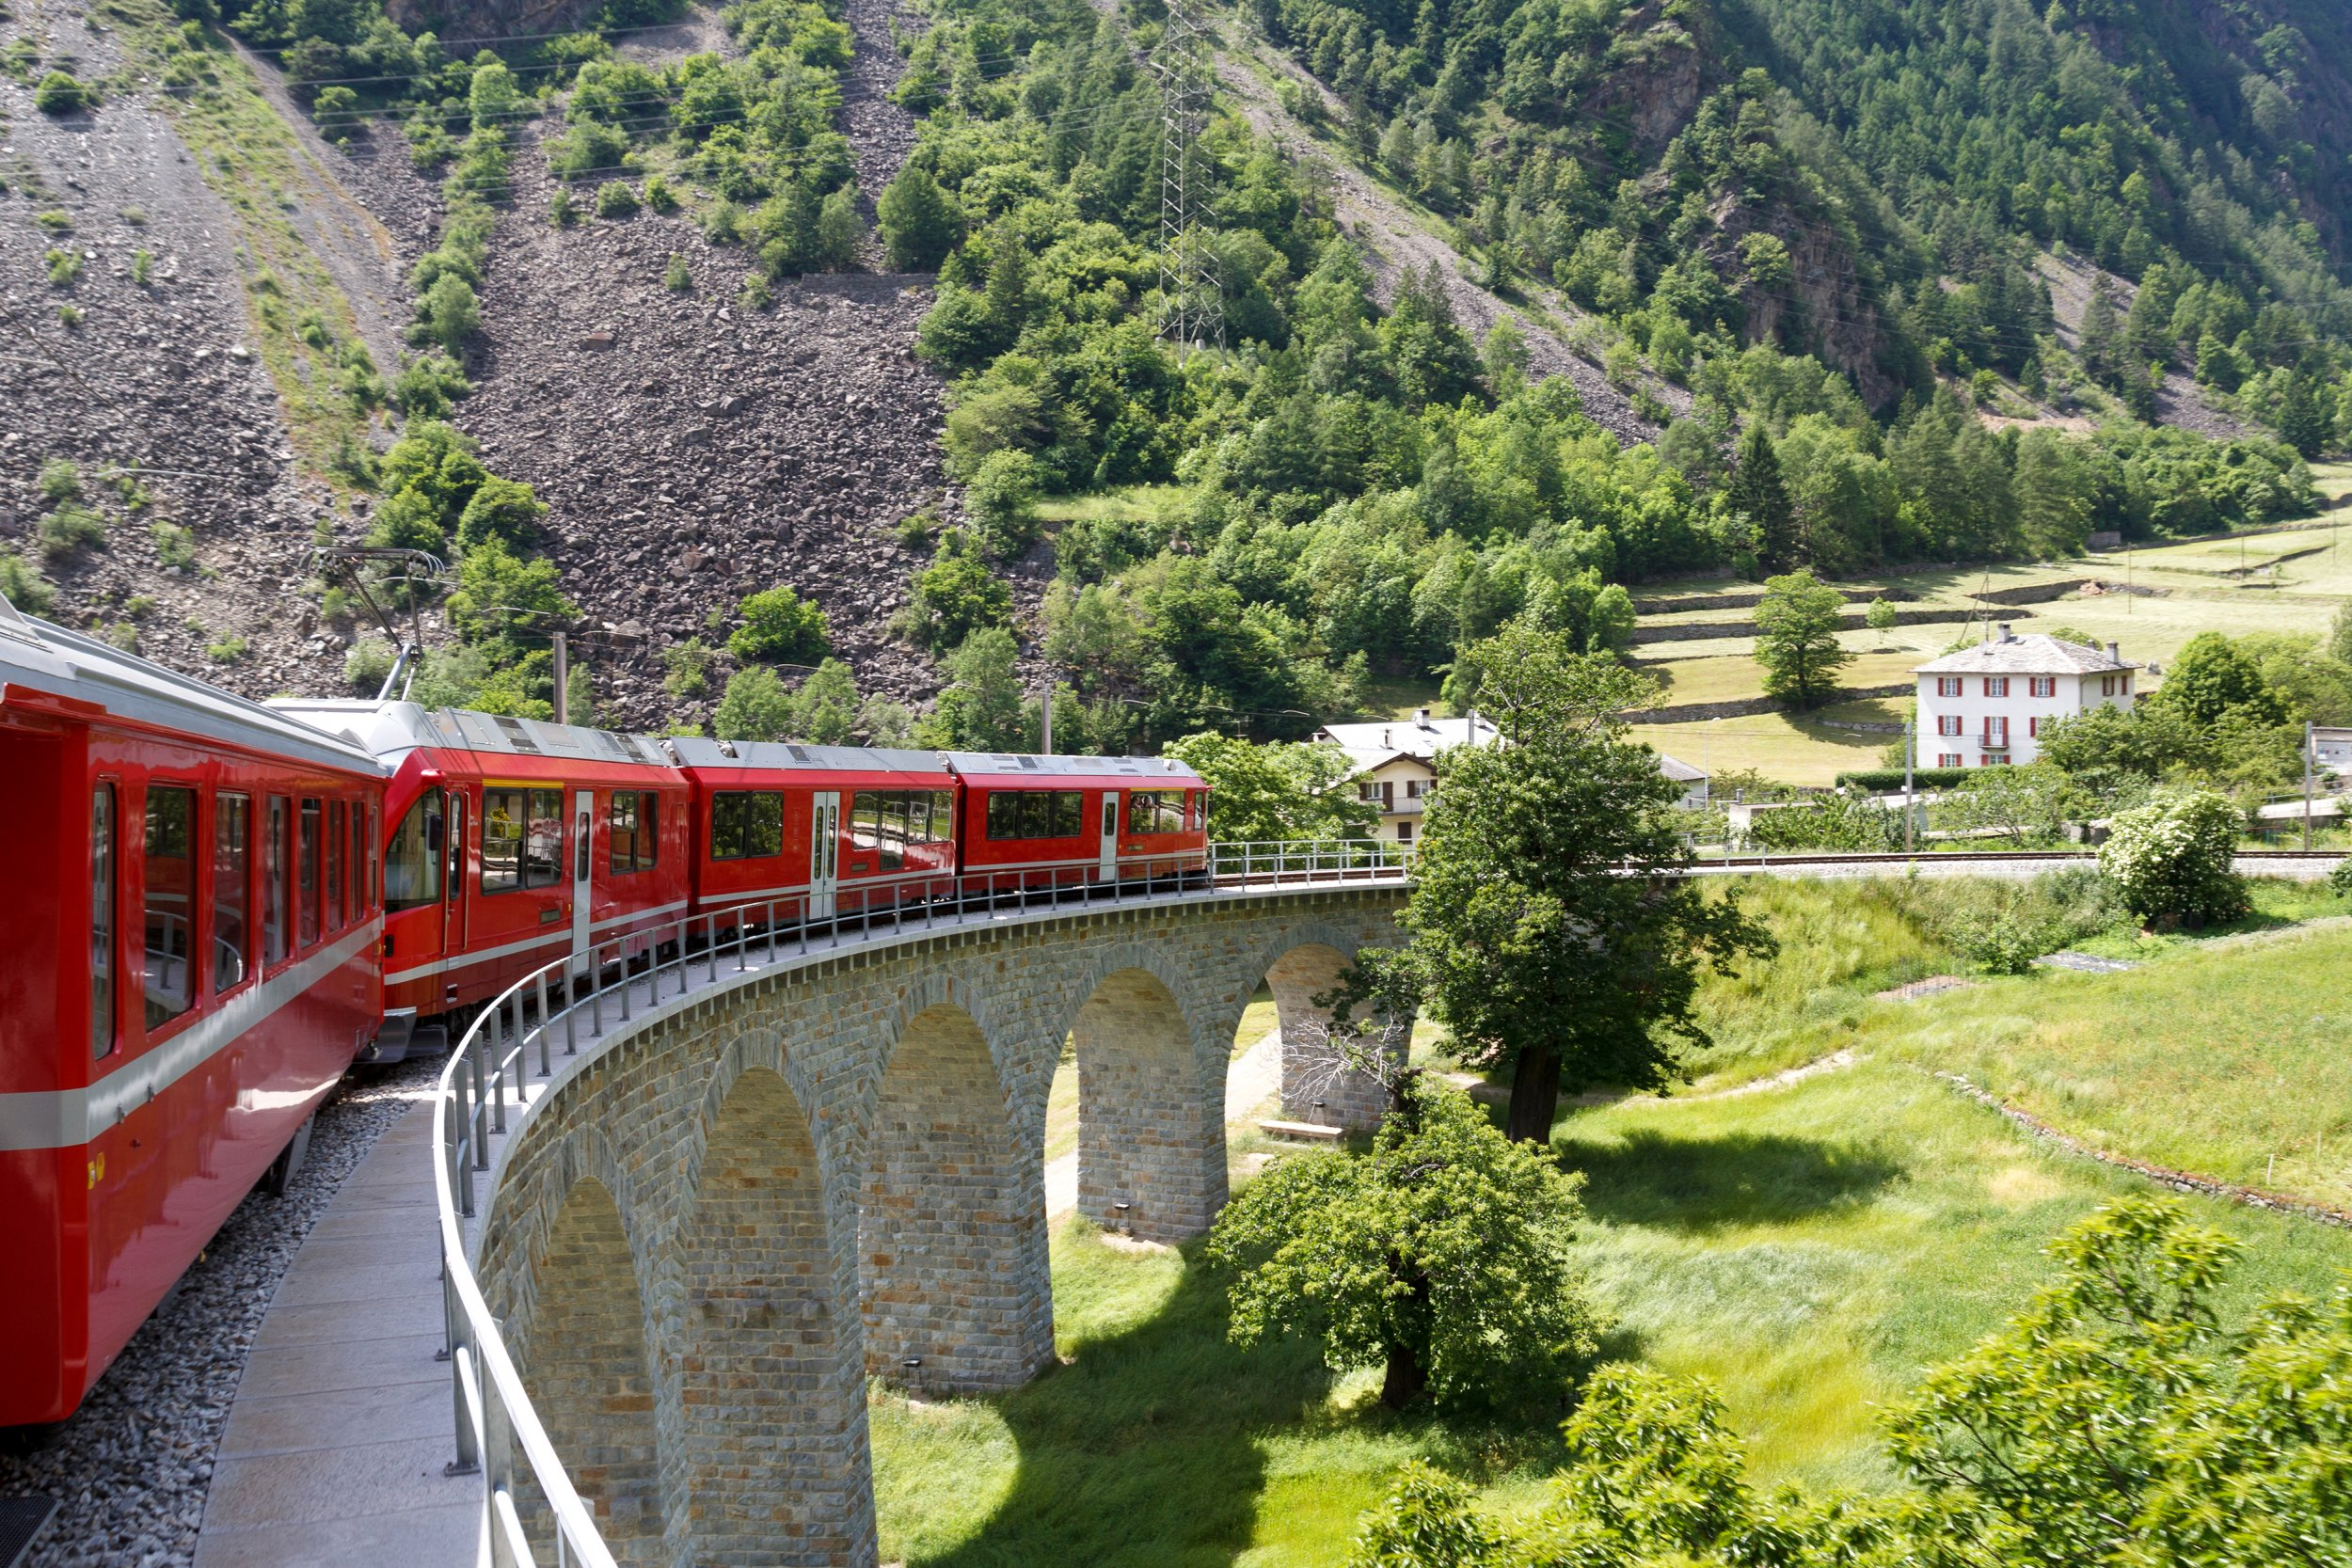 Train Travel through Italy